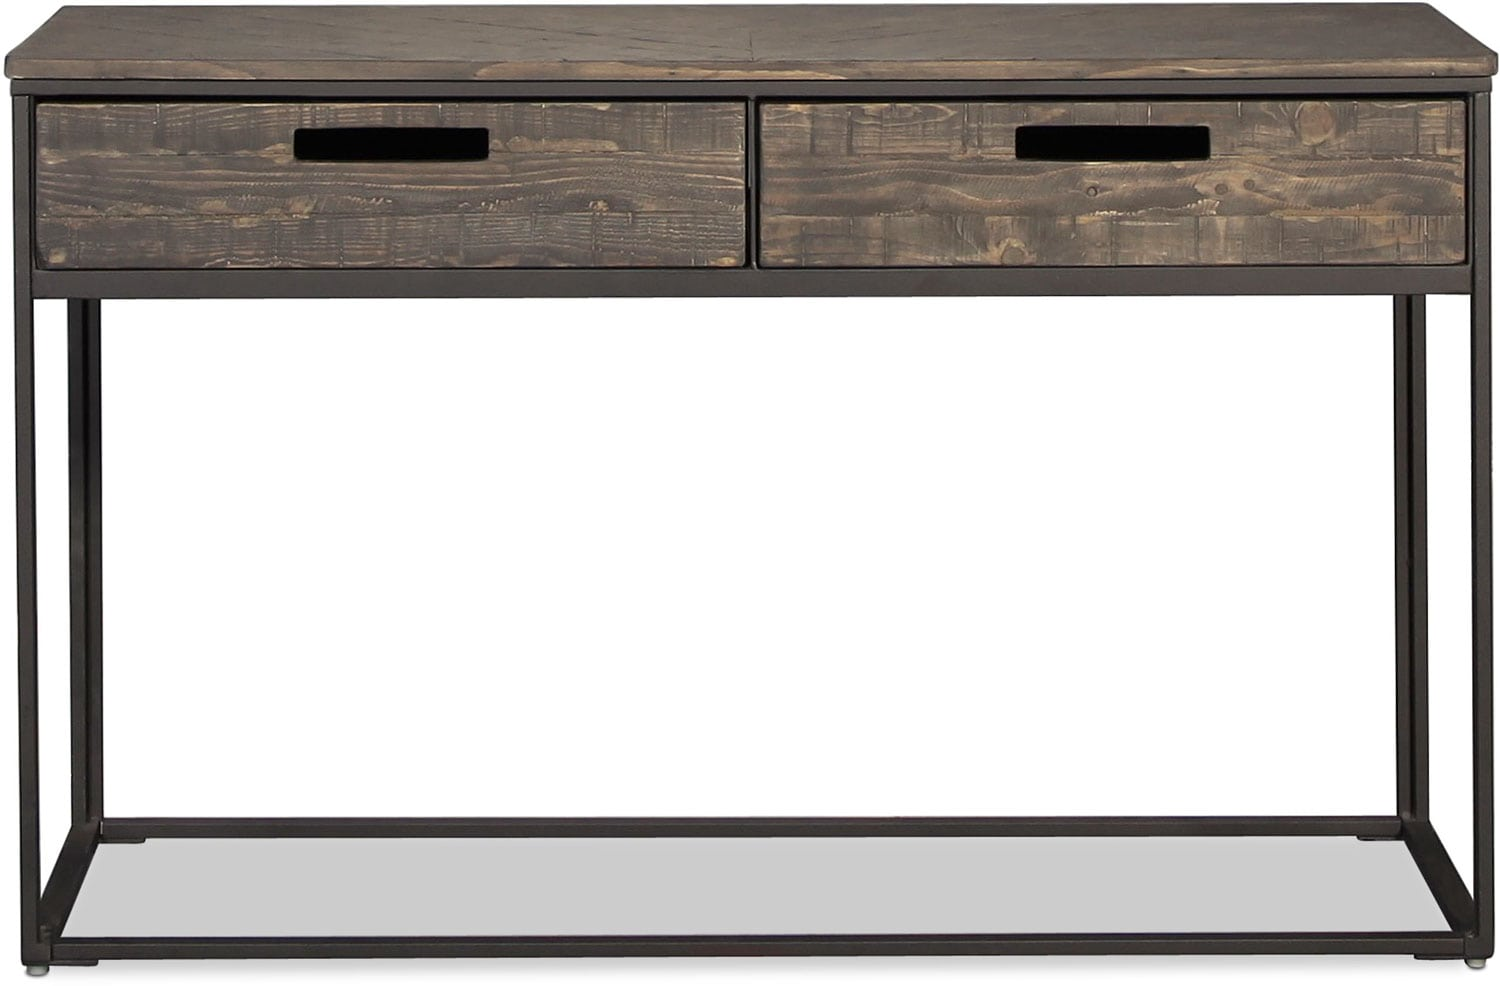 Claremont Sofa Table - Charcoal